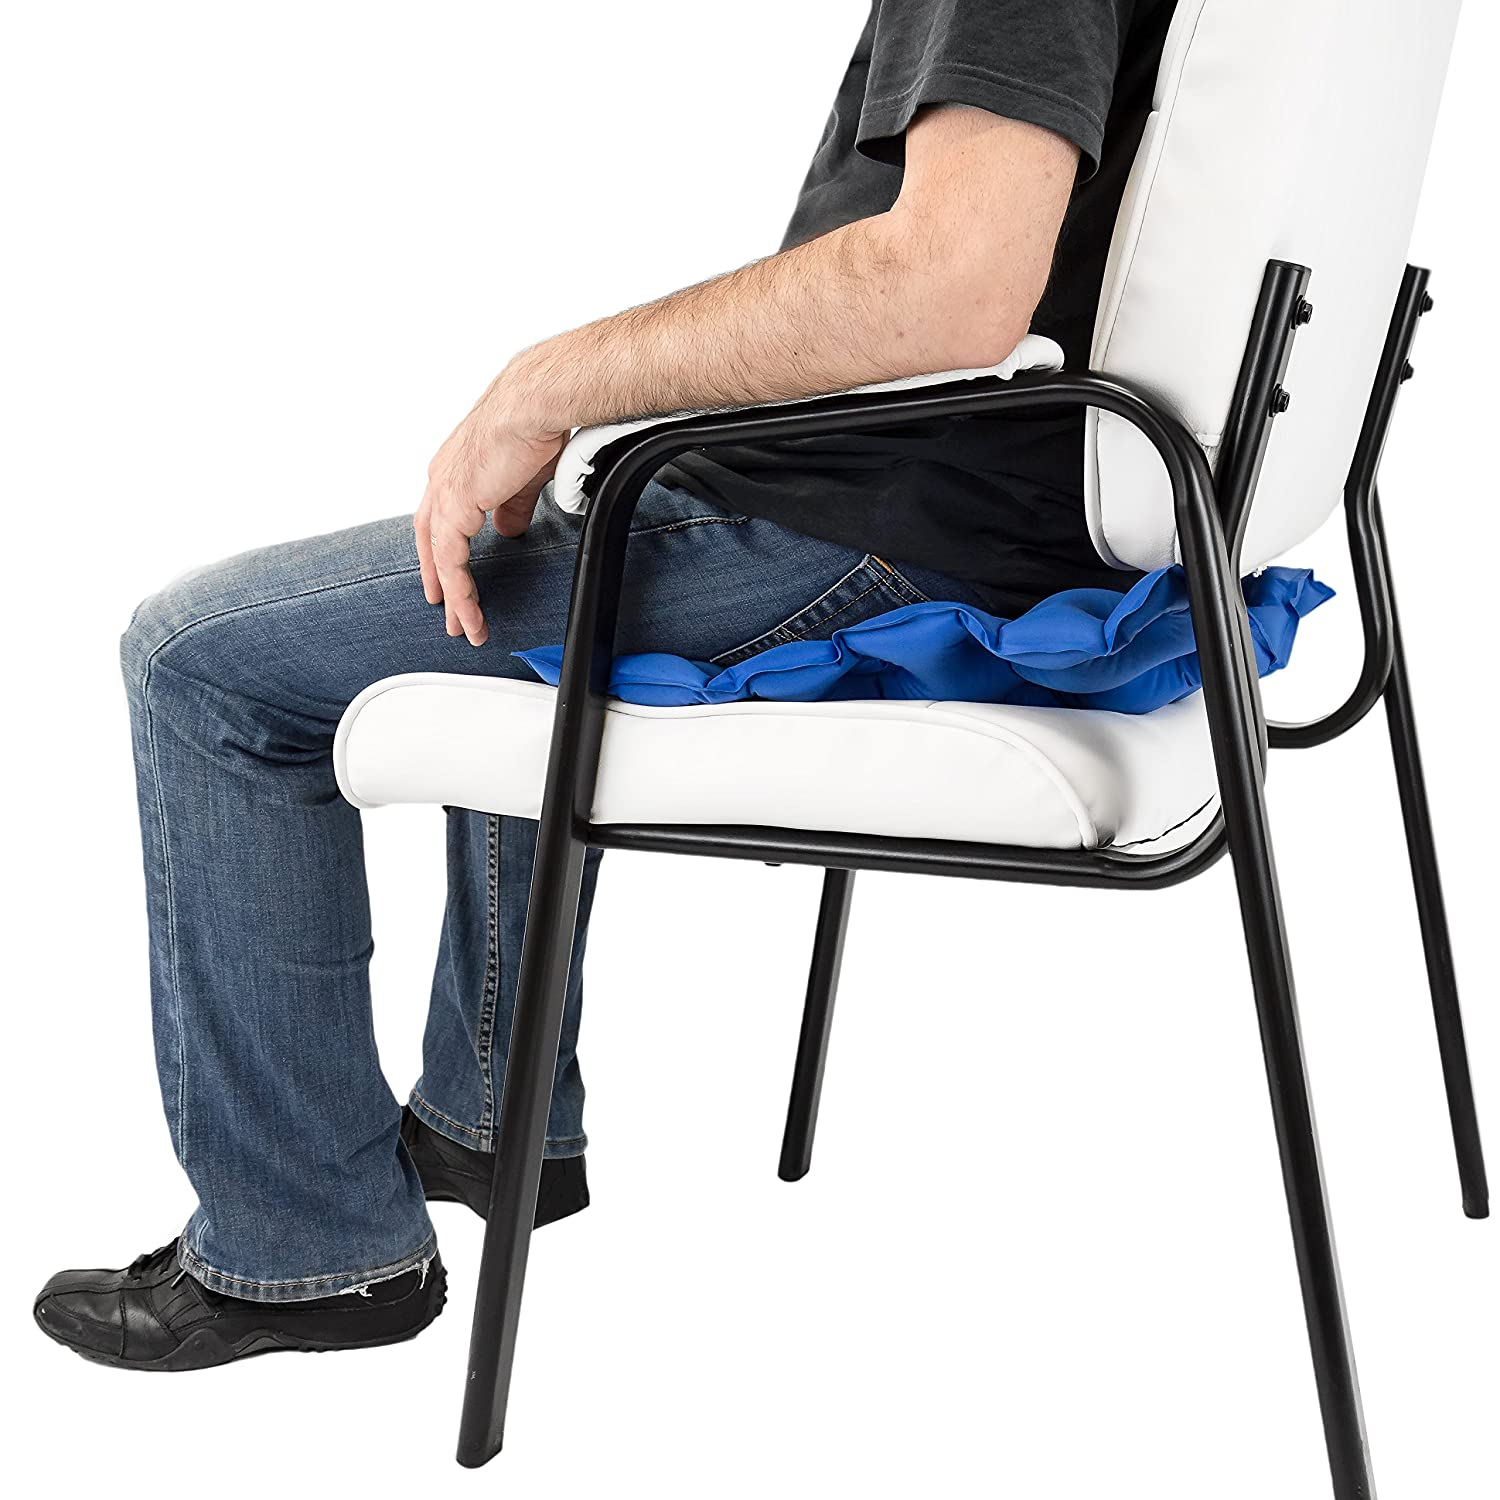 People sitting in waffle chair - Amazon Com Premium Air Inflatable Seat Cushion 17 X 17 Heat Sealed Construction For Durability Air Seat Cushion For Wheel Chair And Day To Day Use